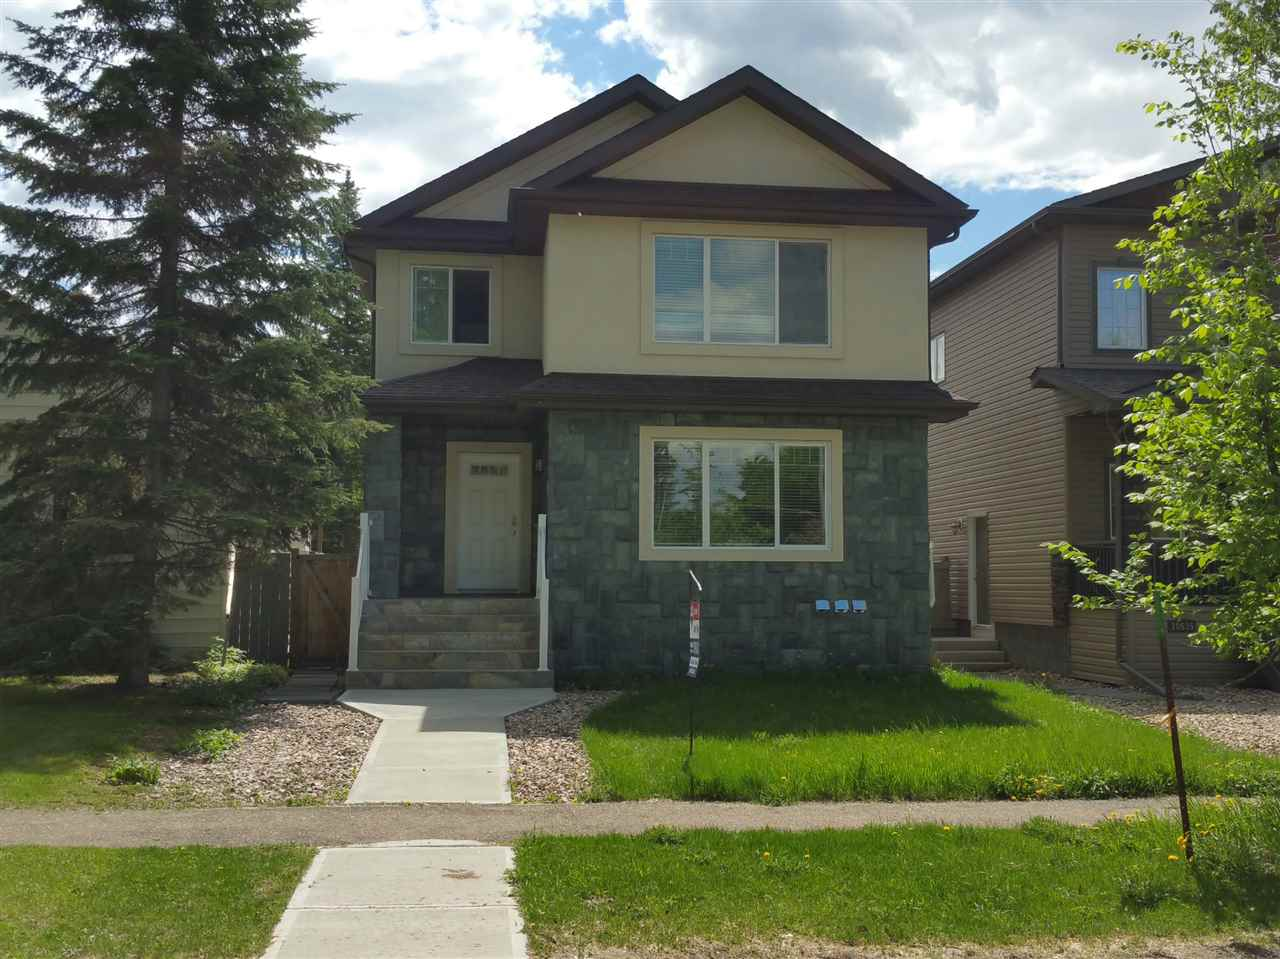 Main Photo: 10631 68 Avenue in Edmonton: Zone 15 House for sale : MLS(r) # E4065636